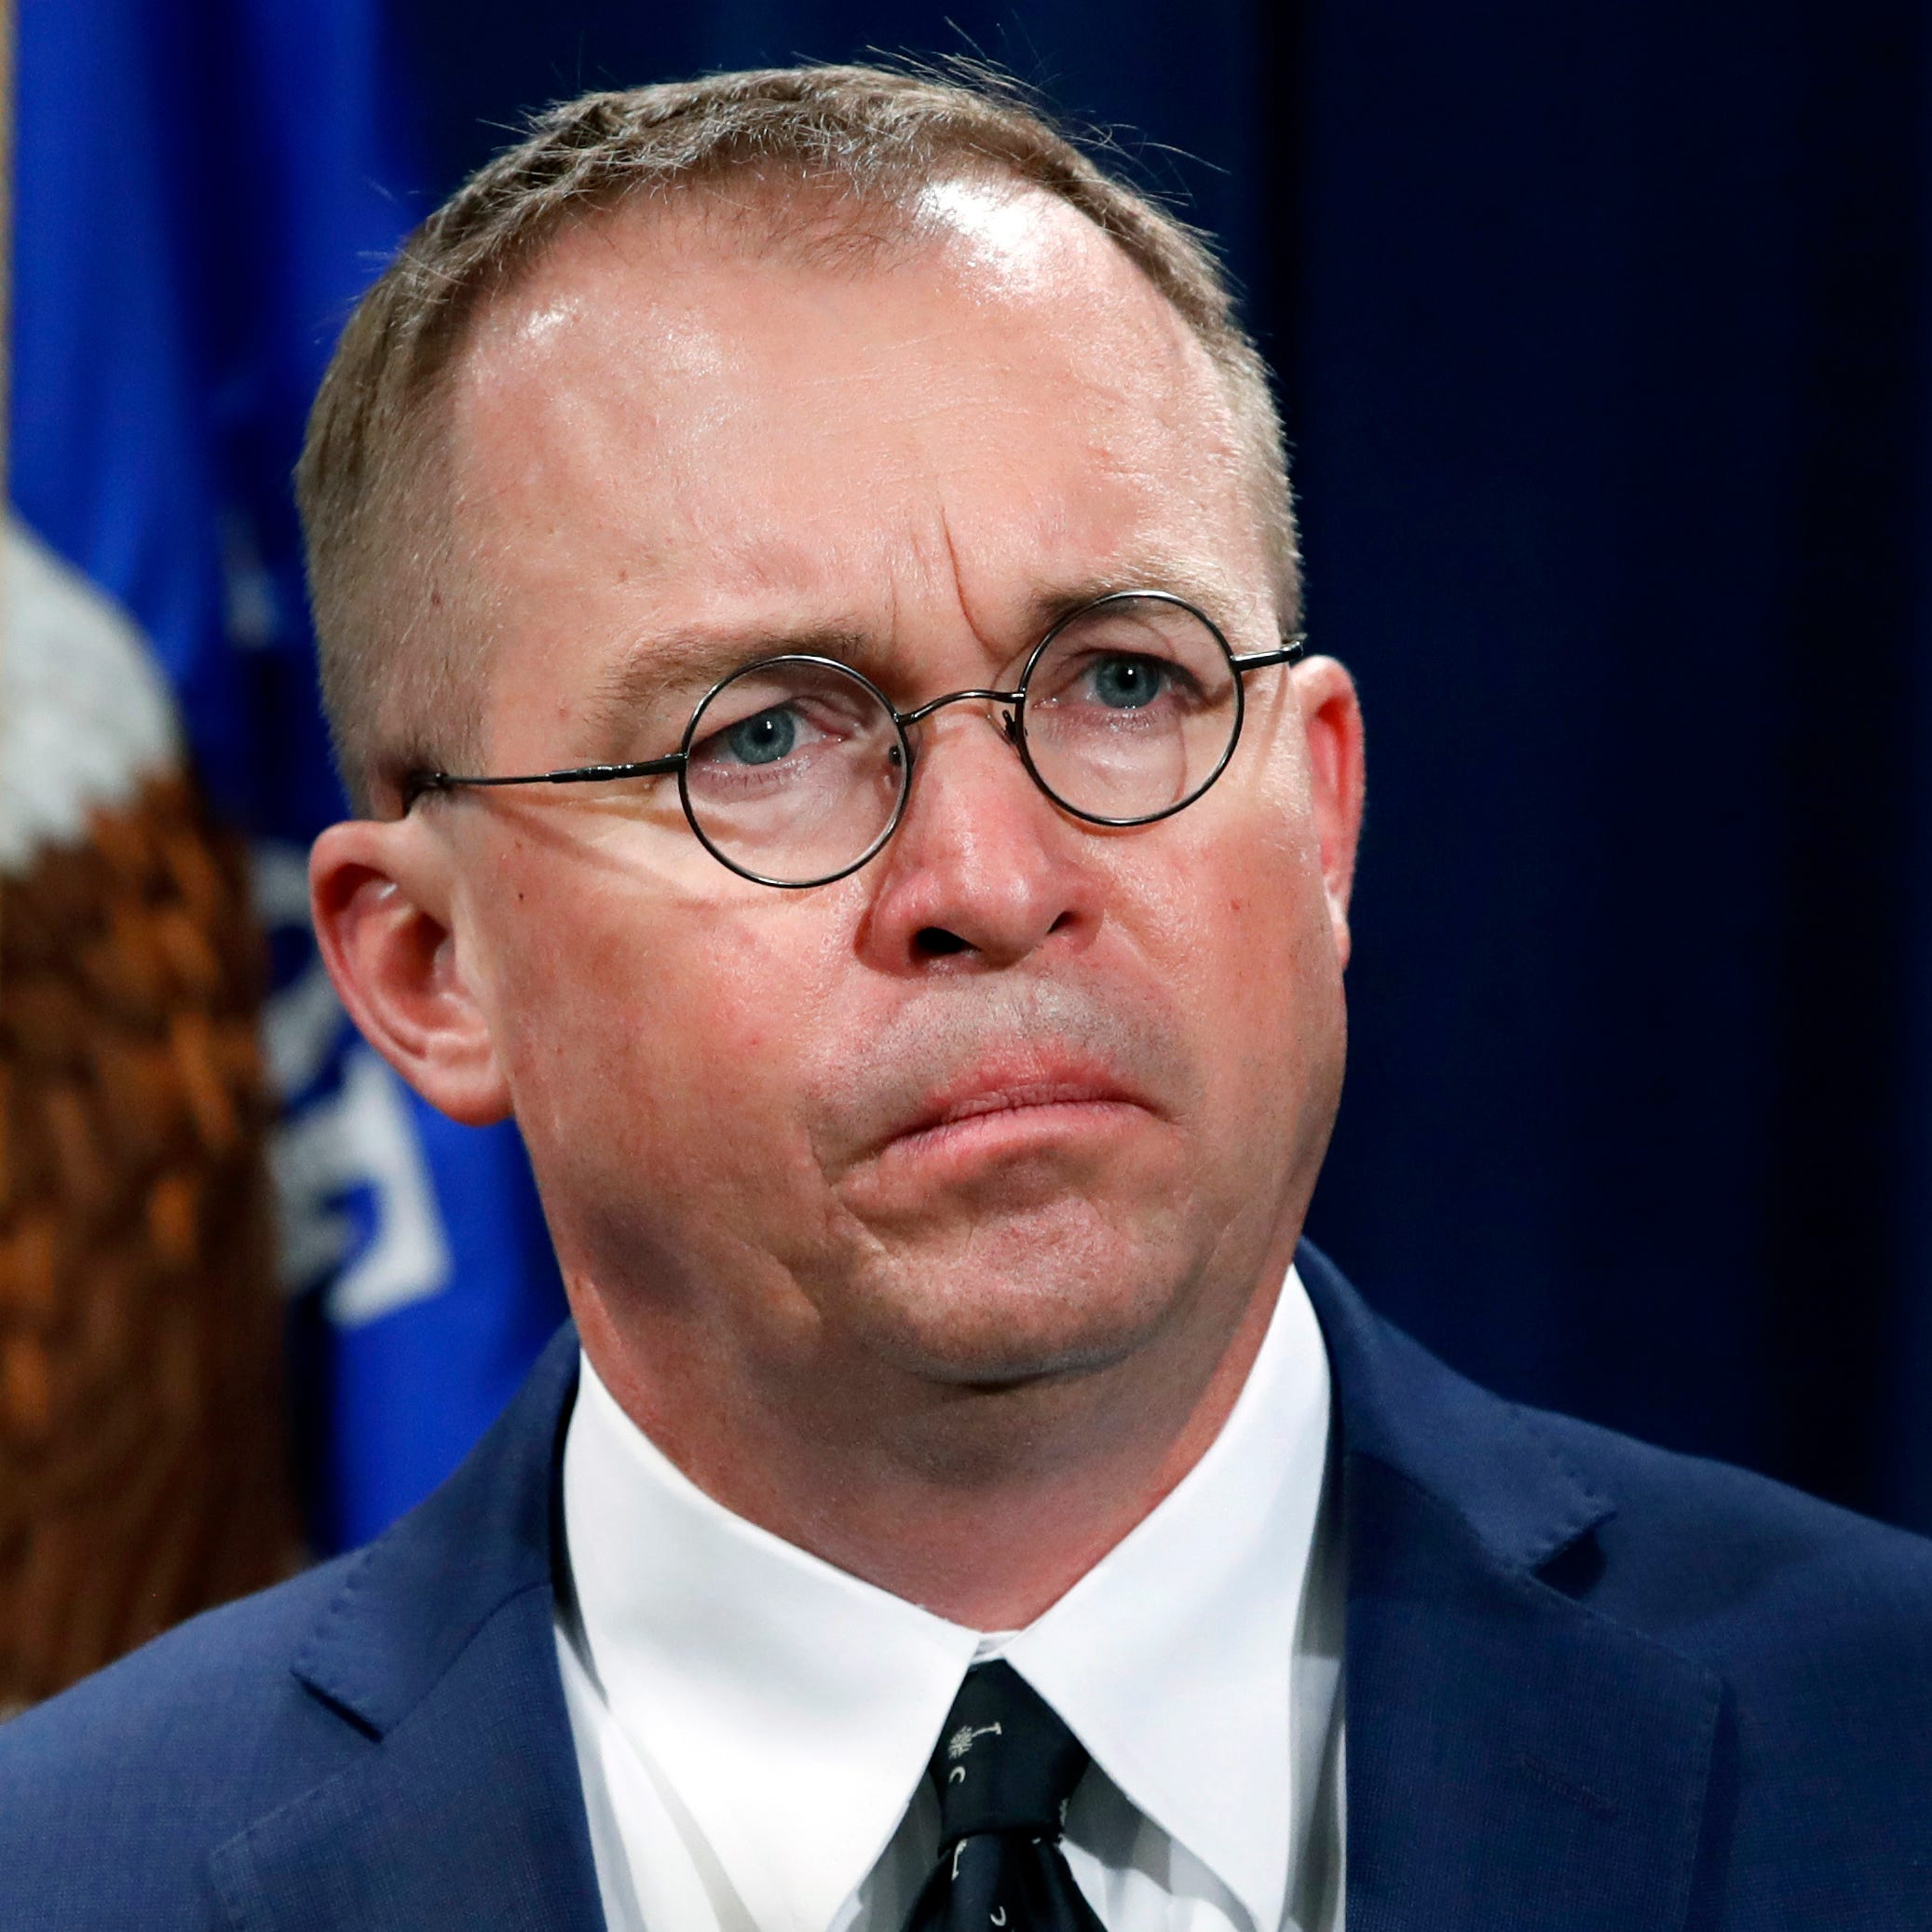 Mick Mulvaney  listens during a news conference at the Department of Justice in Washington on July 11, 2018.